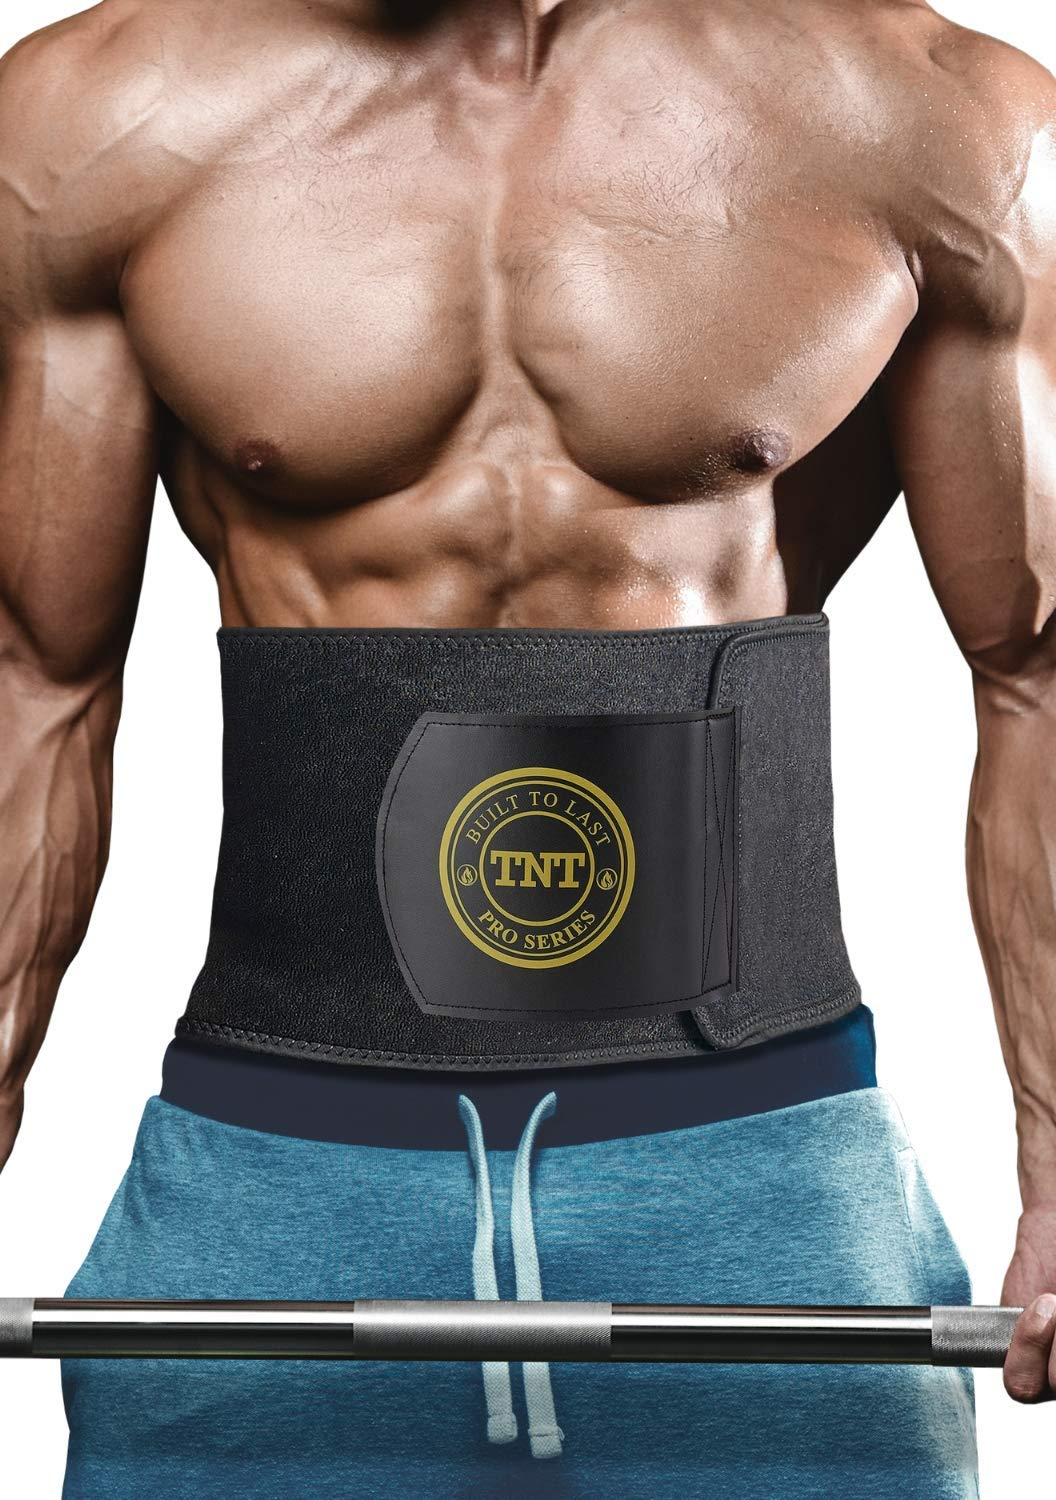 1e286a3bb2 TNT Pro Series Waist Trimmer Weight Loss Ab Belt - Premium Stomach Fat  Burner Wrap and